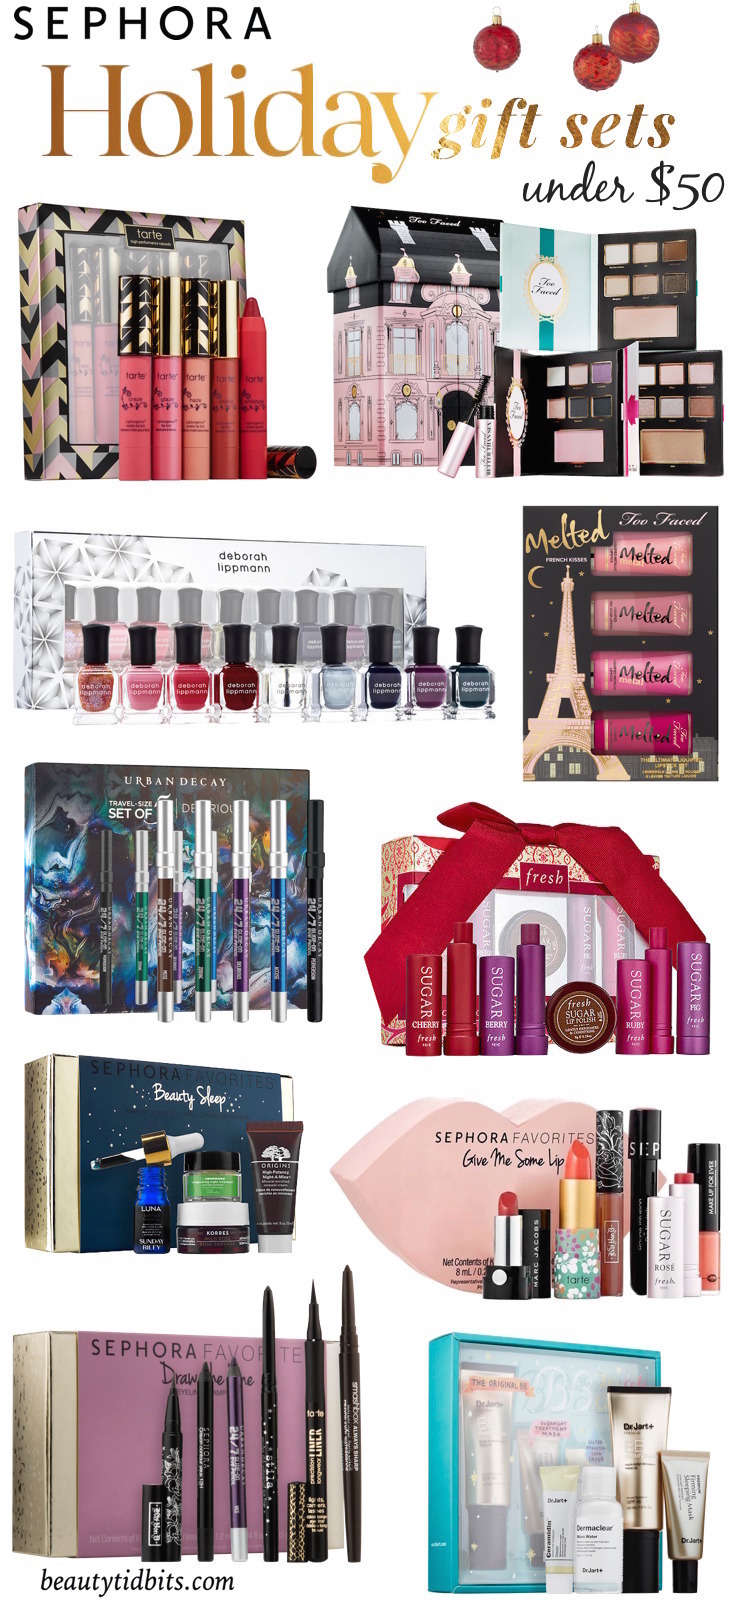 Here's a list of the best Sephora holiday 2015 gift sets under $  50!